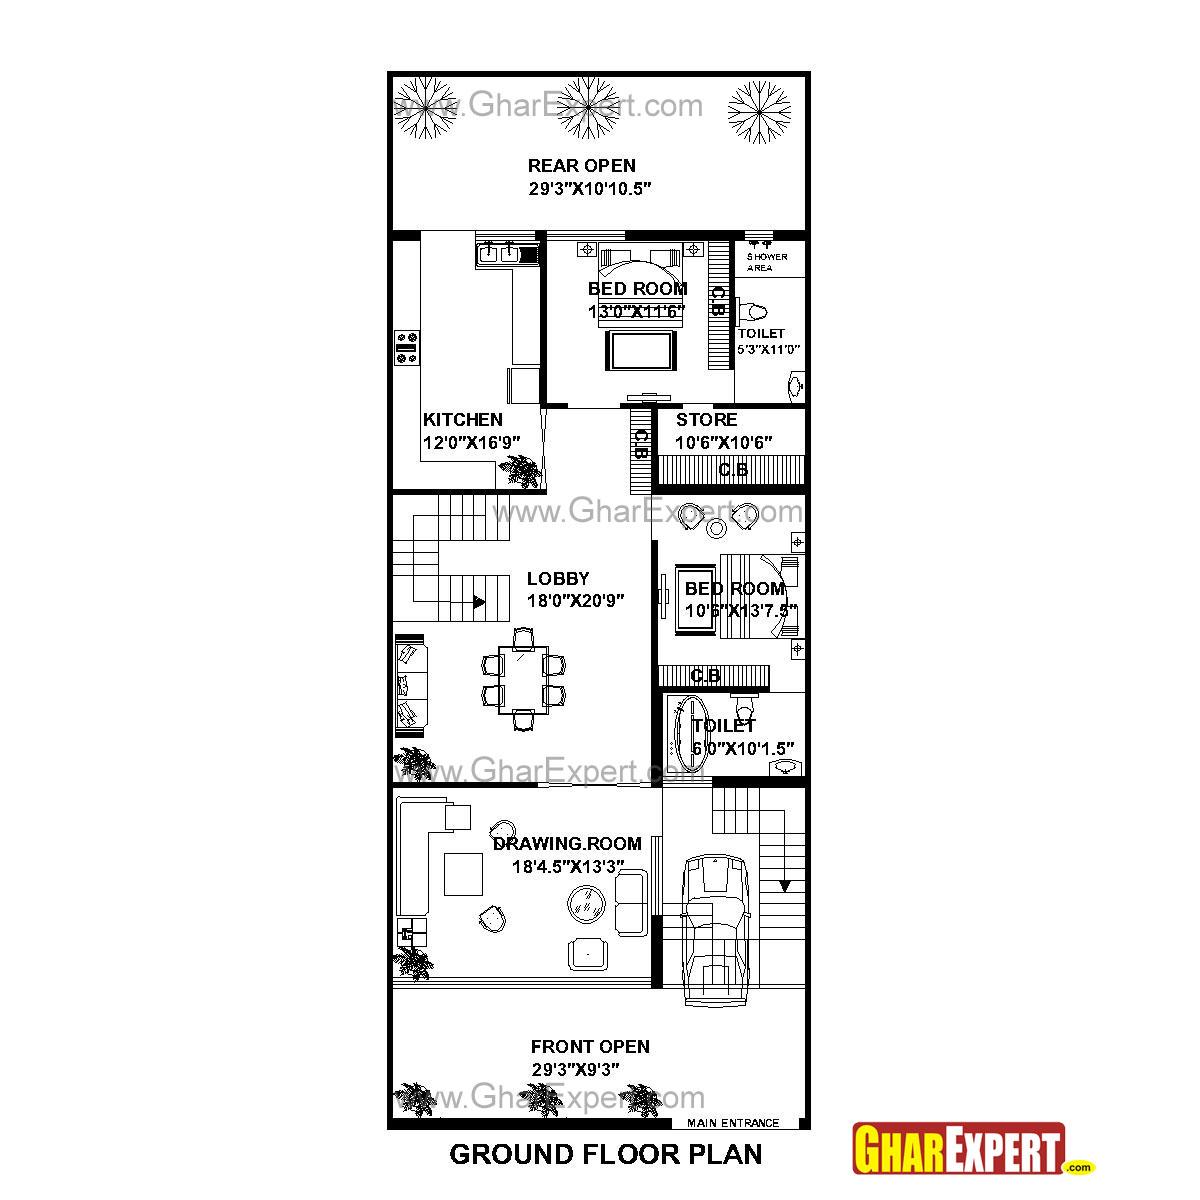 House plan for 30 feet by 75 feet plot plot size 250 square yards house plan for 30 feet by 75 feet plot plot size 250 square yards malvernweather Image collections